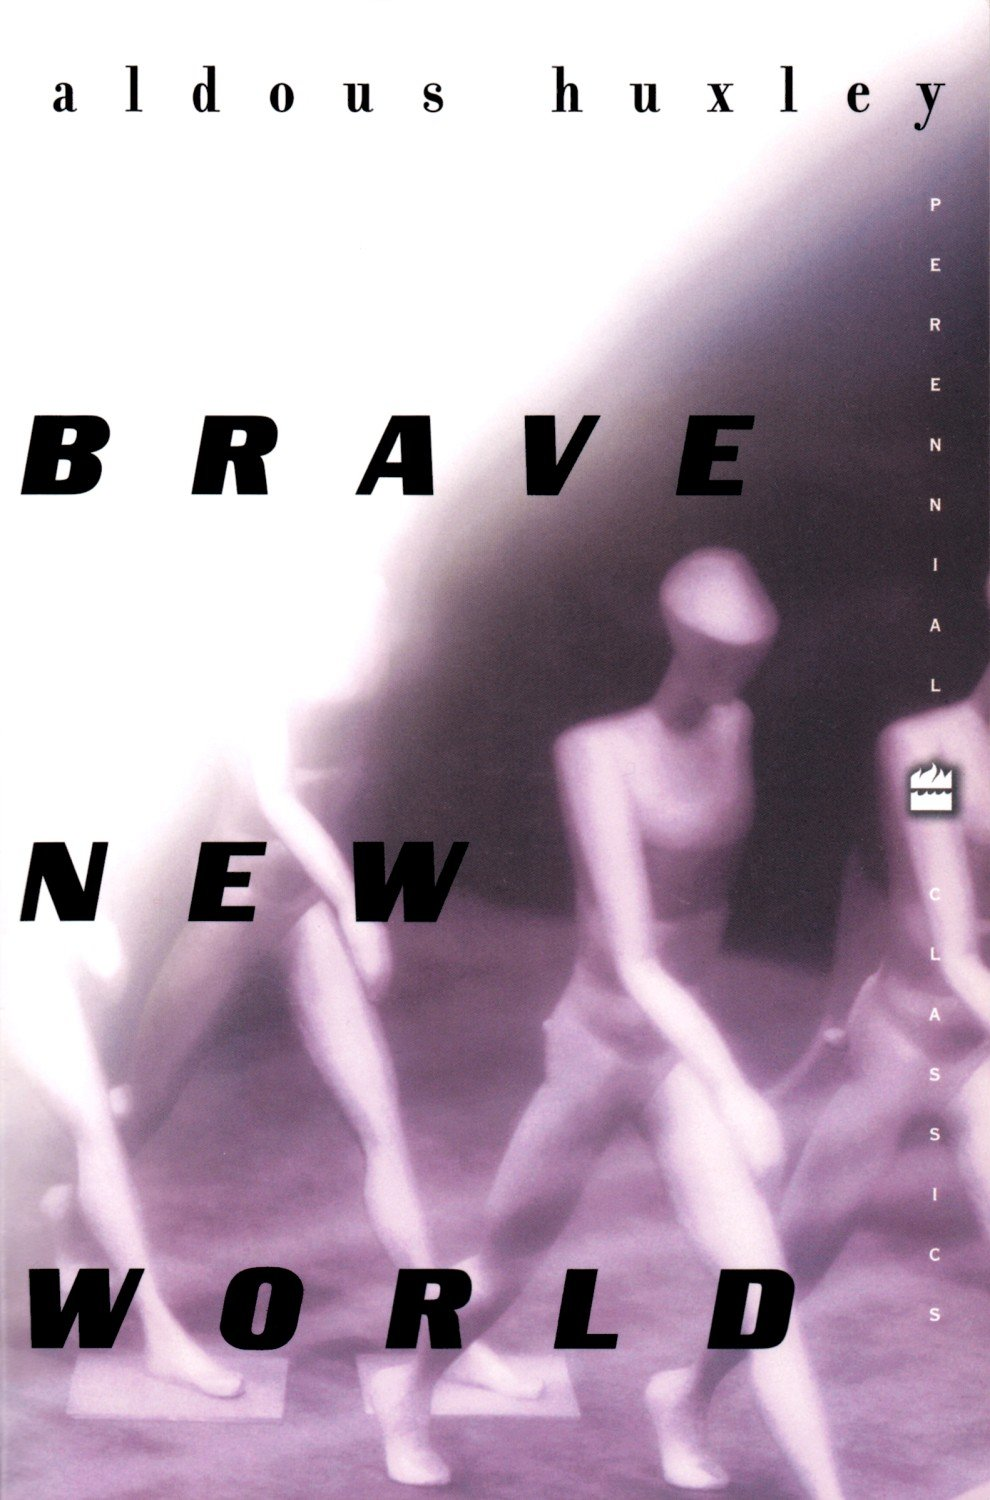 utopia in brave new world by aldous huxley Brave new world is a dystopian novel written by aldous huxley in chapter 13, the relationship between lenina and john the savage reaches a climactic moment that reveals the culture clash between.